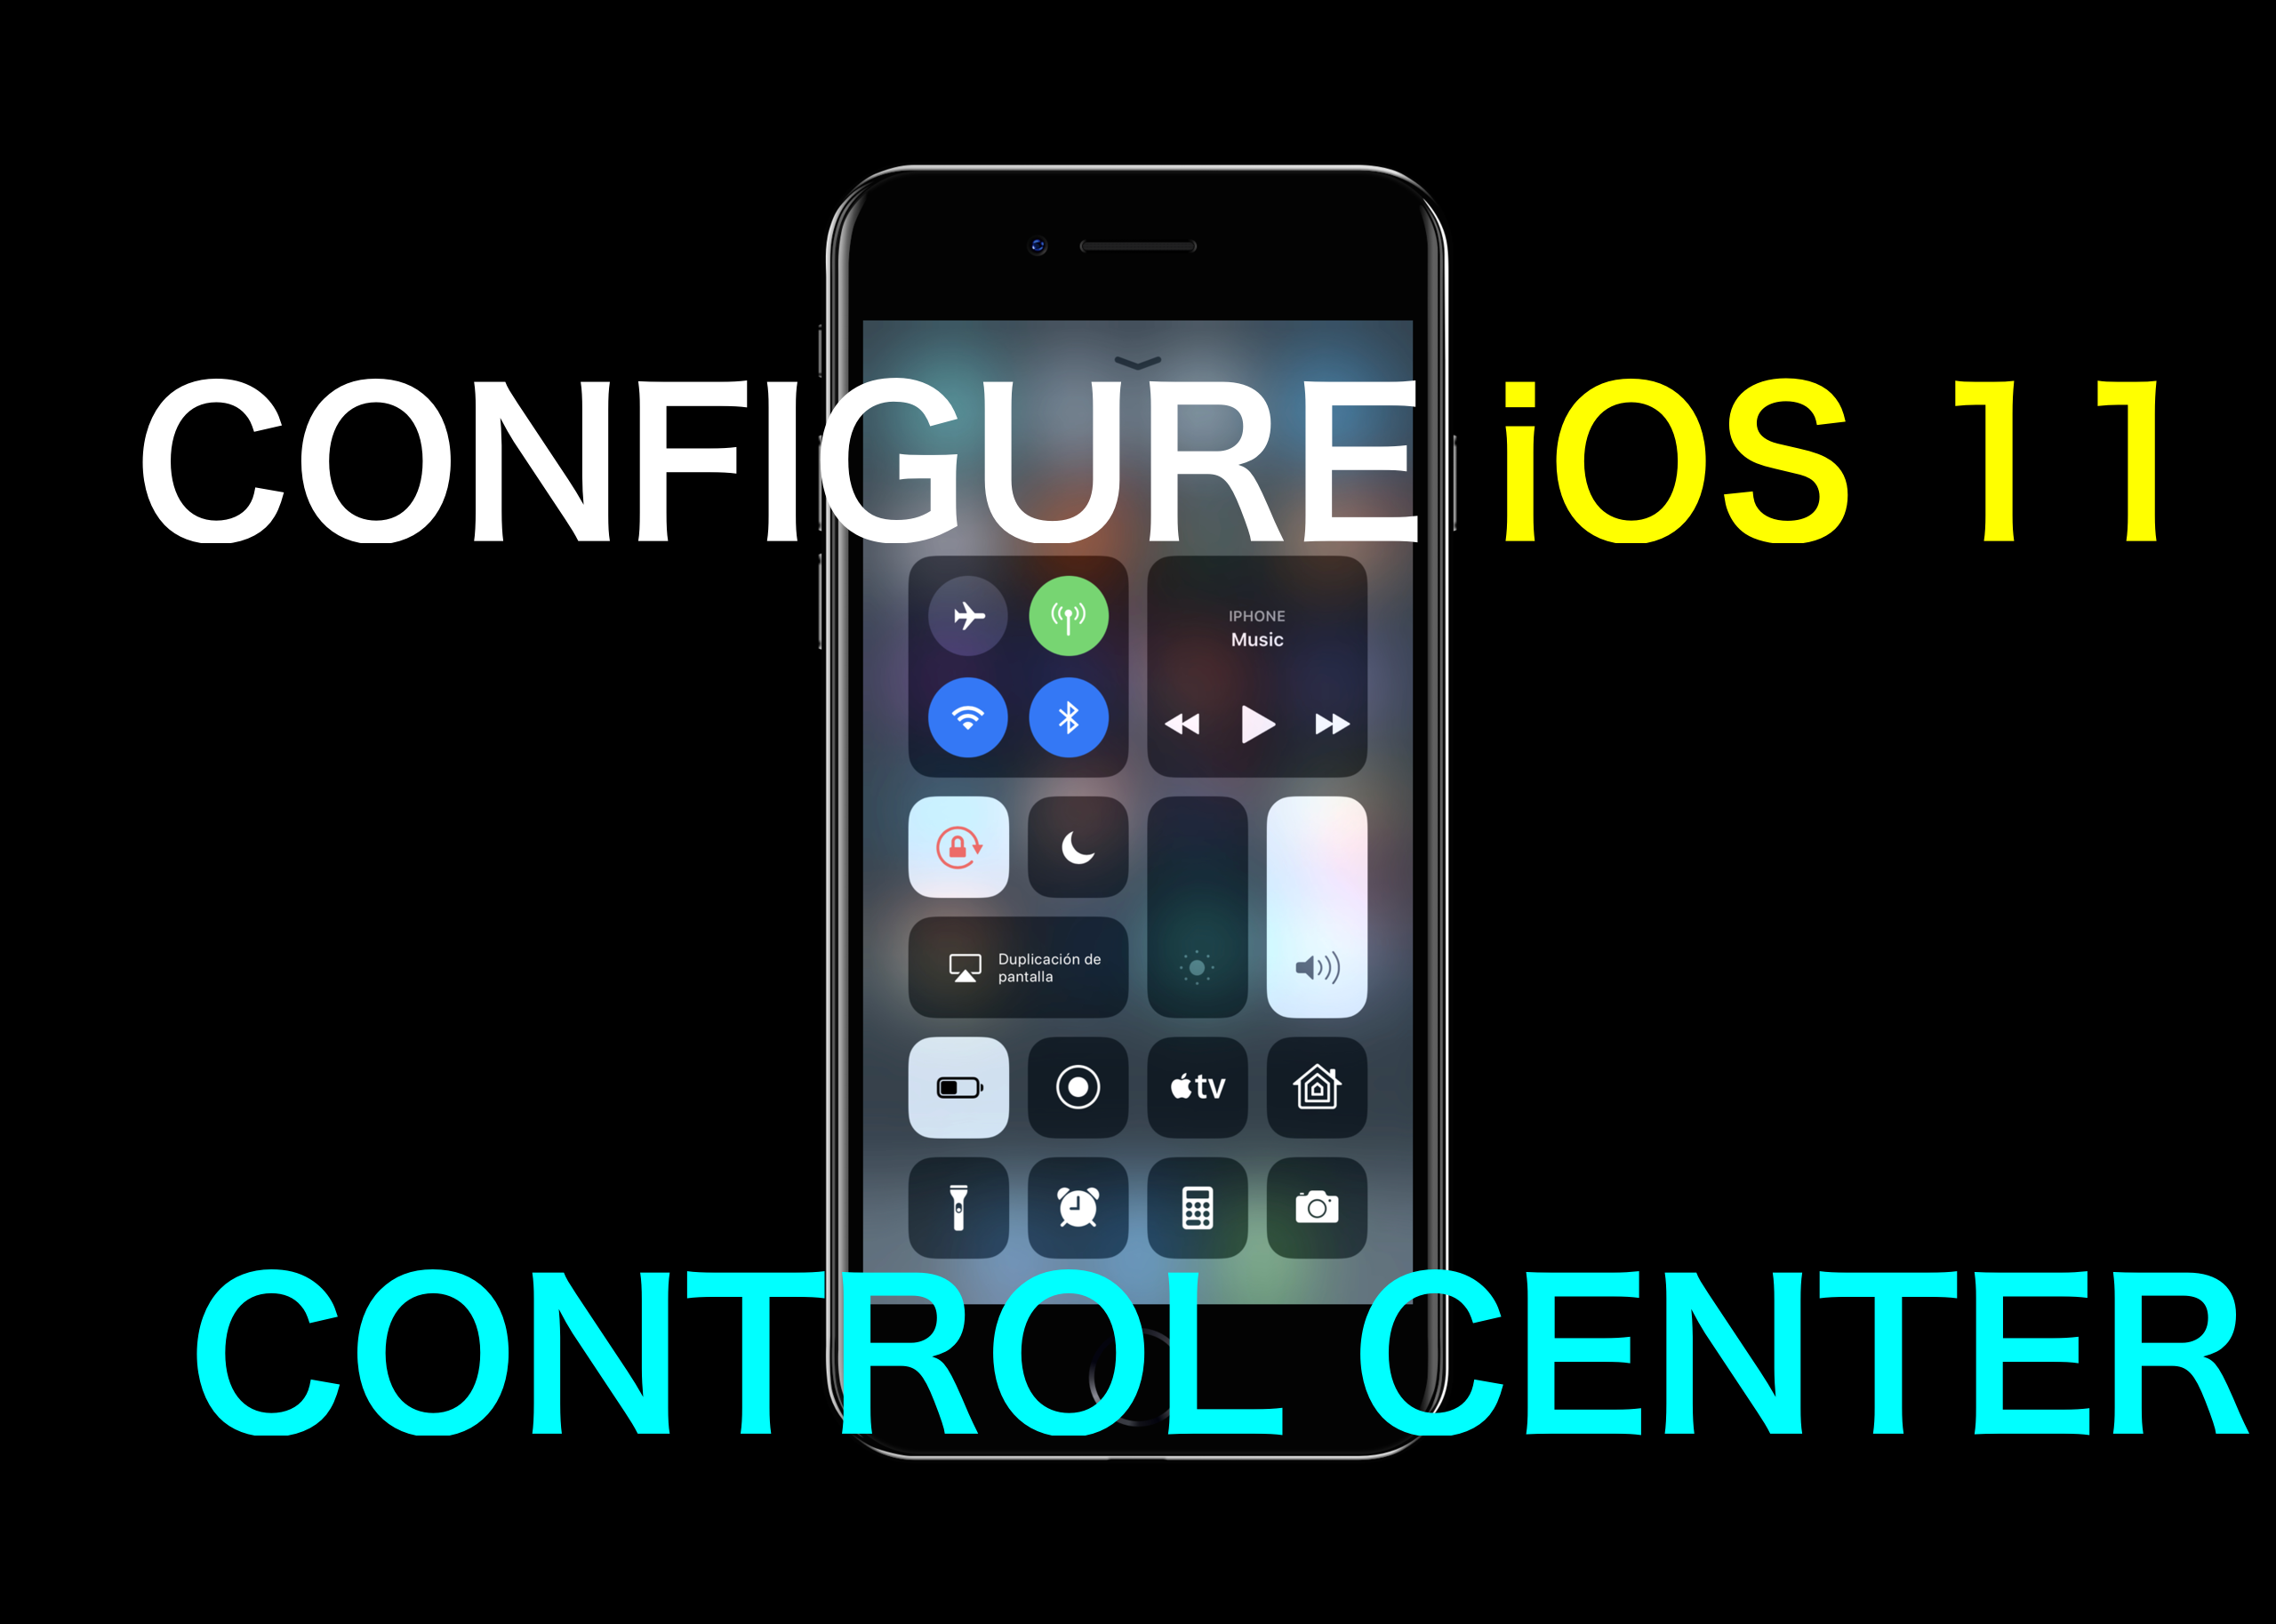 customise-configure-control-center-ios11